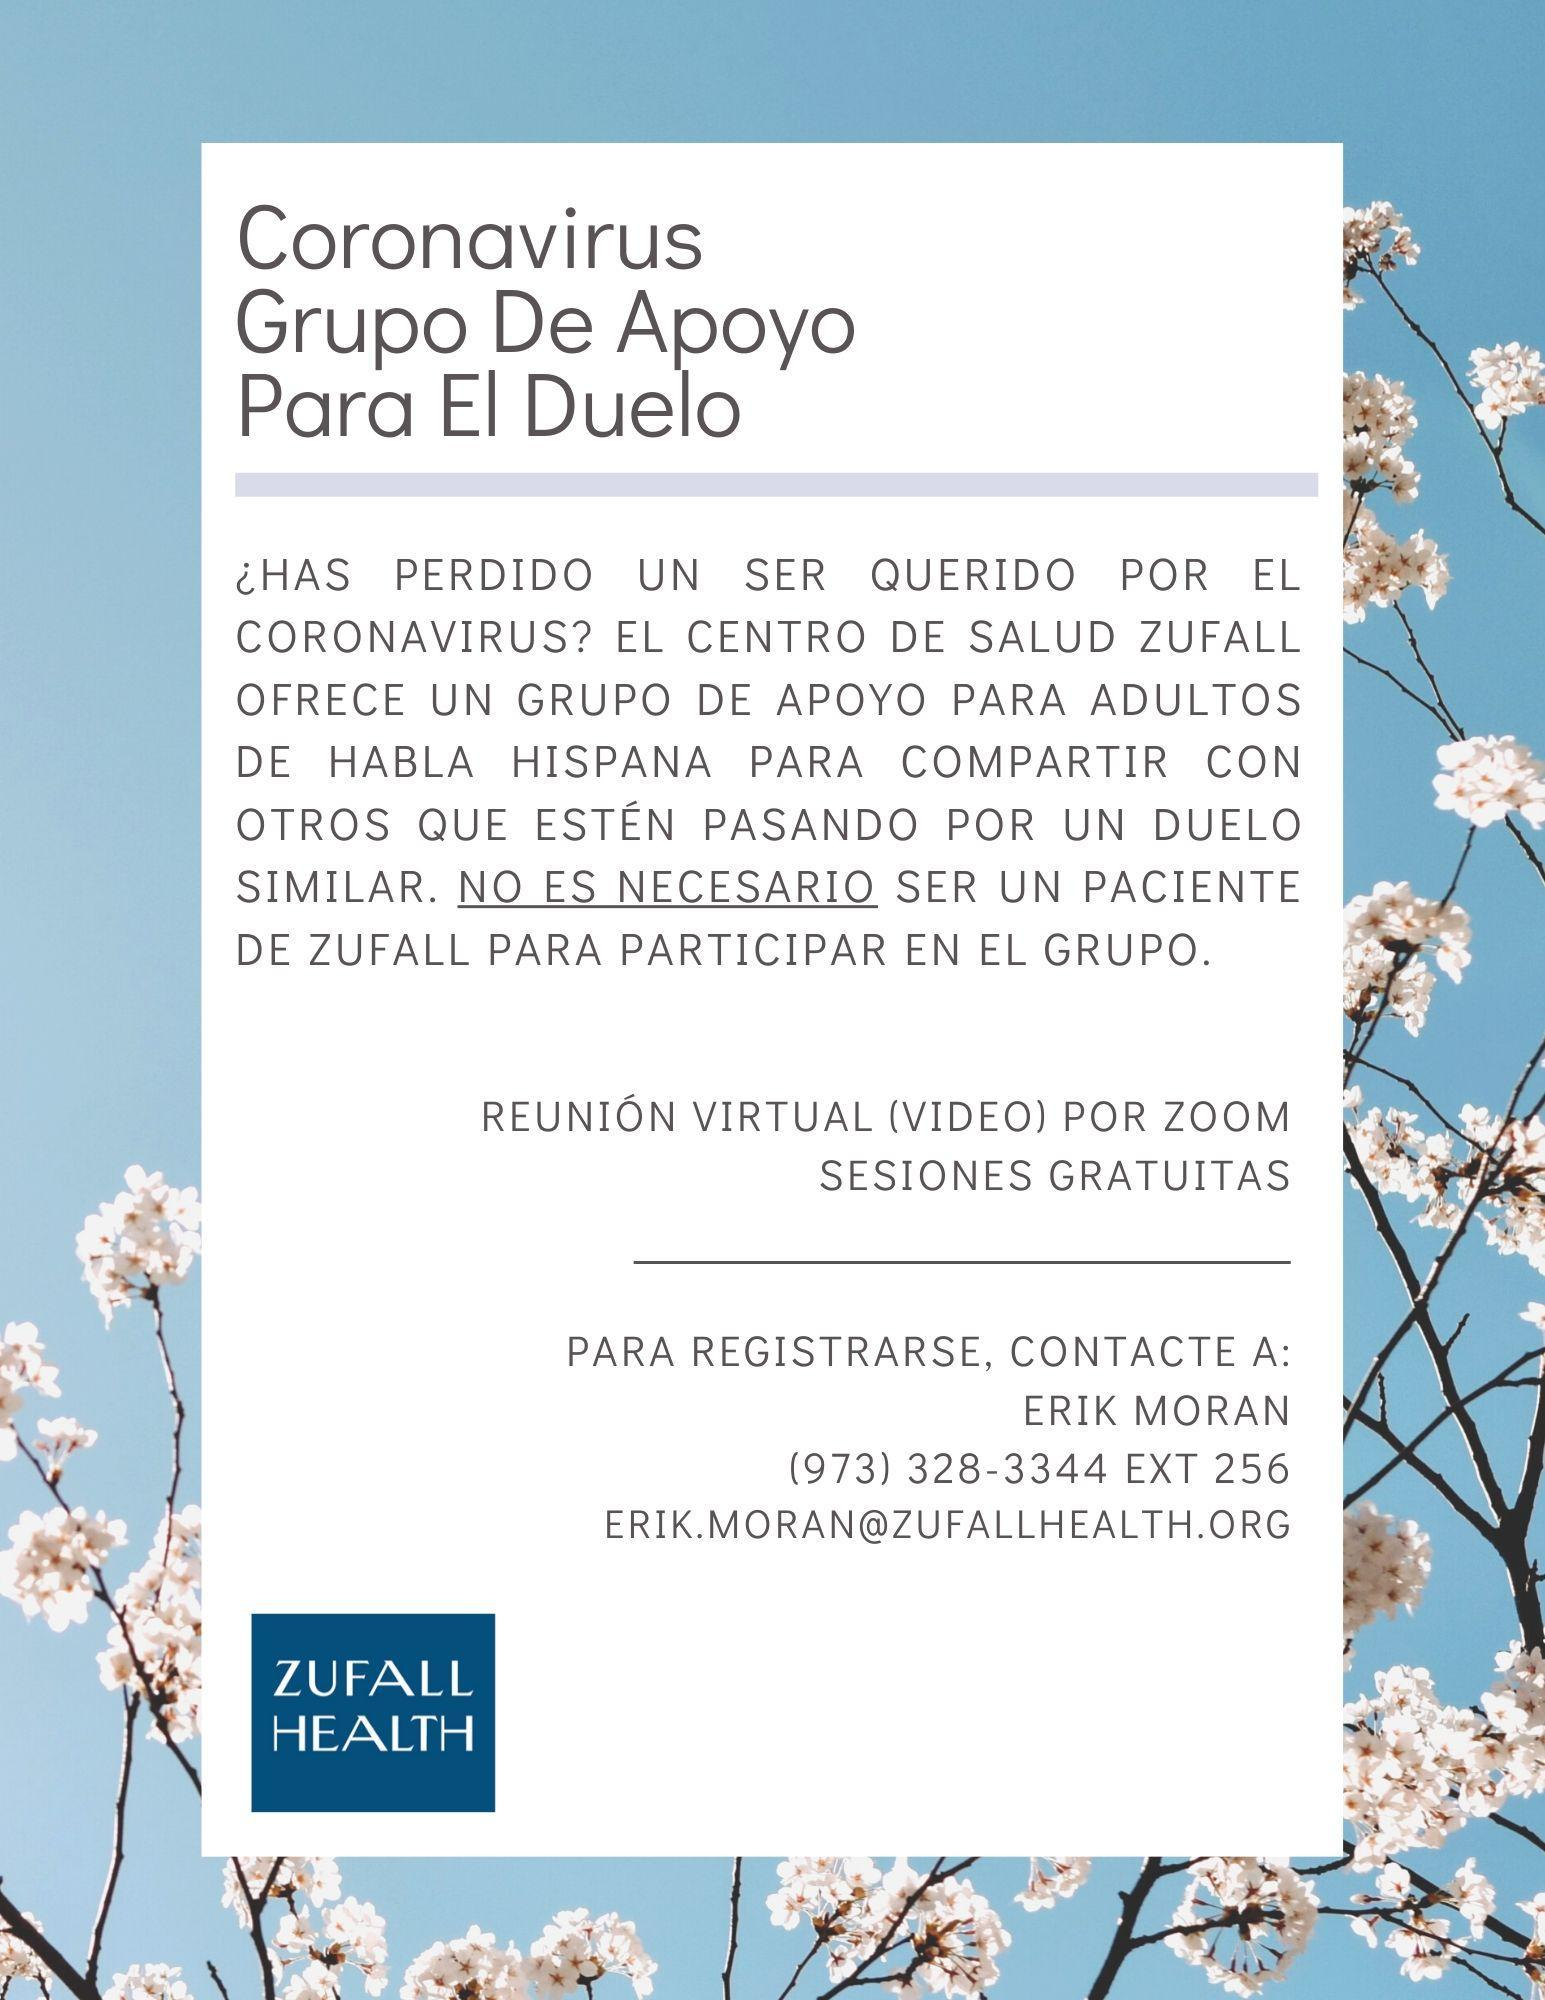 Coronavirus Grief and Loss Support flyer in Spanish